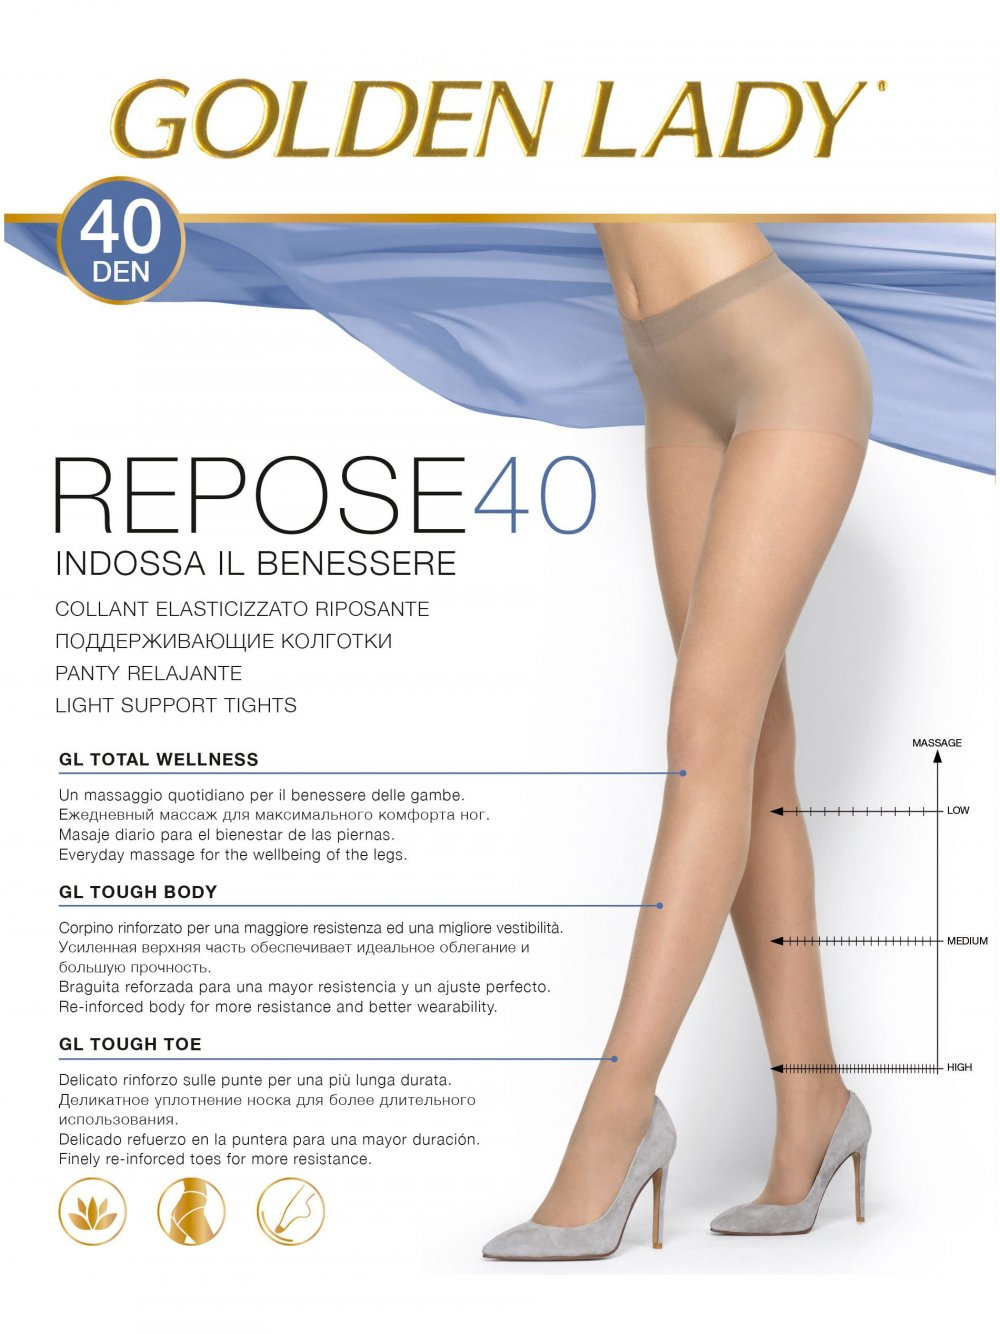 REPOSE 40 DEN GOLDEN LADY COLLANT RIPOSANTE VELATO